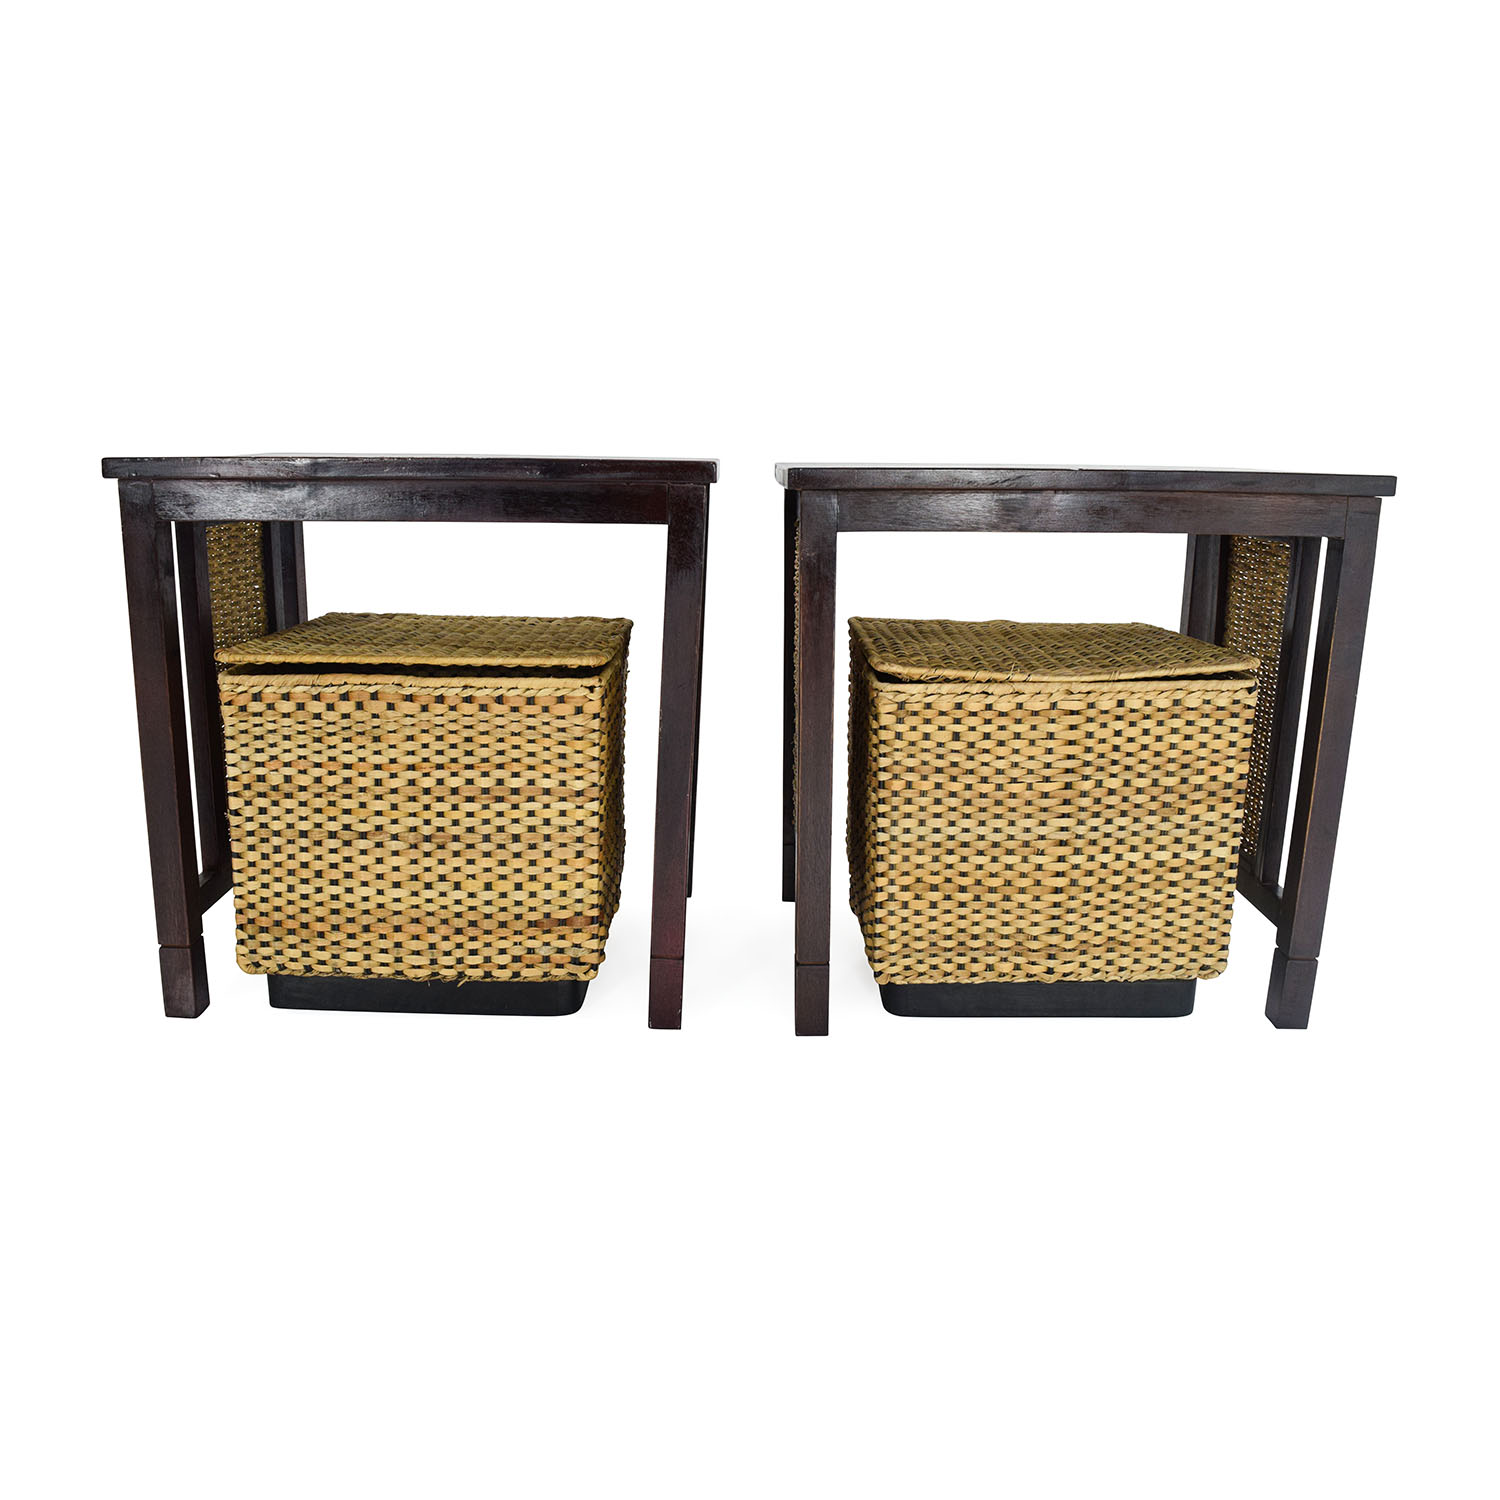 Unknown Brand Paif of Side Tables with Baskets discount